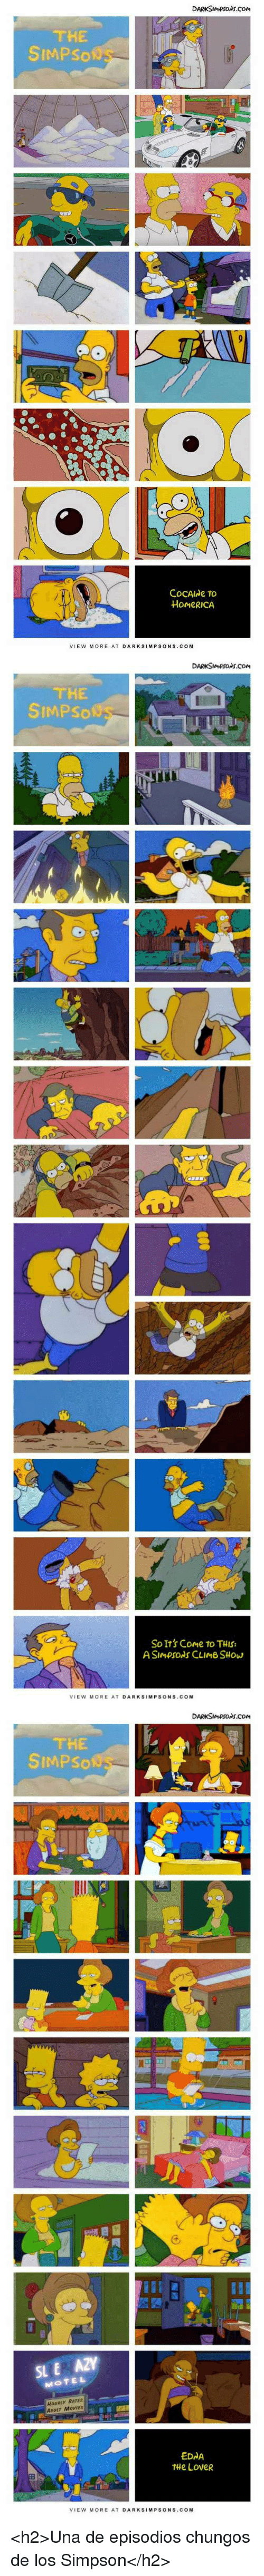 Movies, Simpson, and Com: DARKSIMpsoNs.com  THE  SIMPSO  CoCAlNe To  HoMeRICA  VIEW MORE AT DARKSIMPSONS.COM   THE  SIMPSo  to  So Its CoMe to THIS  ASImpSoNS CLIMB SHOw  VIEW MORE AT DARKSIMPSONS.COM   DARKSImPsoNs.COM  THE  SIMPSo  SL E AZY  MOTE L  HOURLY RATES  ADULT MOVIES  EDNA  THe LoveR  VIEW MORE AT DARKSIMPSONS. COM <h2>Una de episodios chungos de los Simpson</h2>